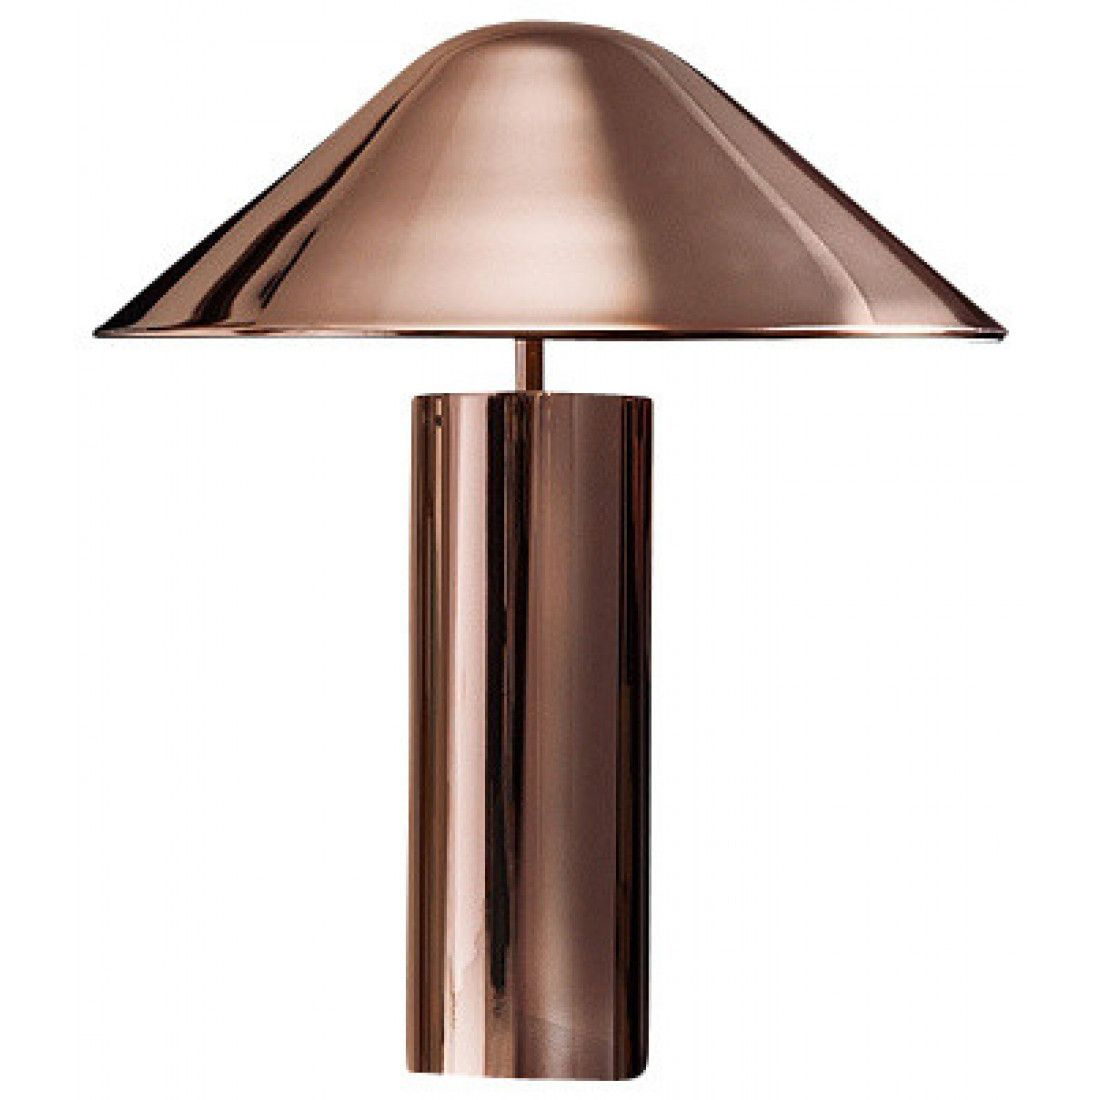 Damo Table Simple Lamp Copper Lamp Simple Lamp Best Desk Lamp